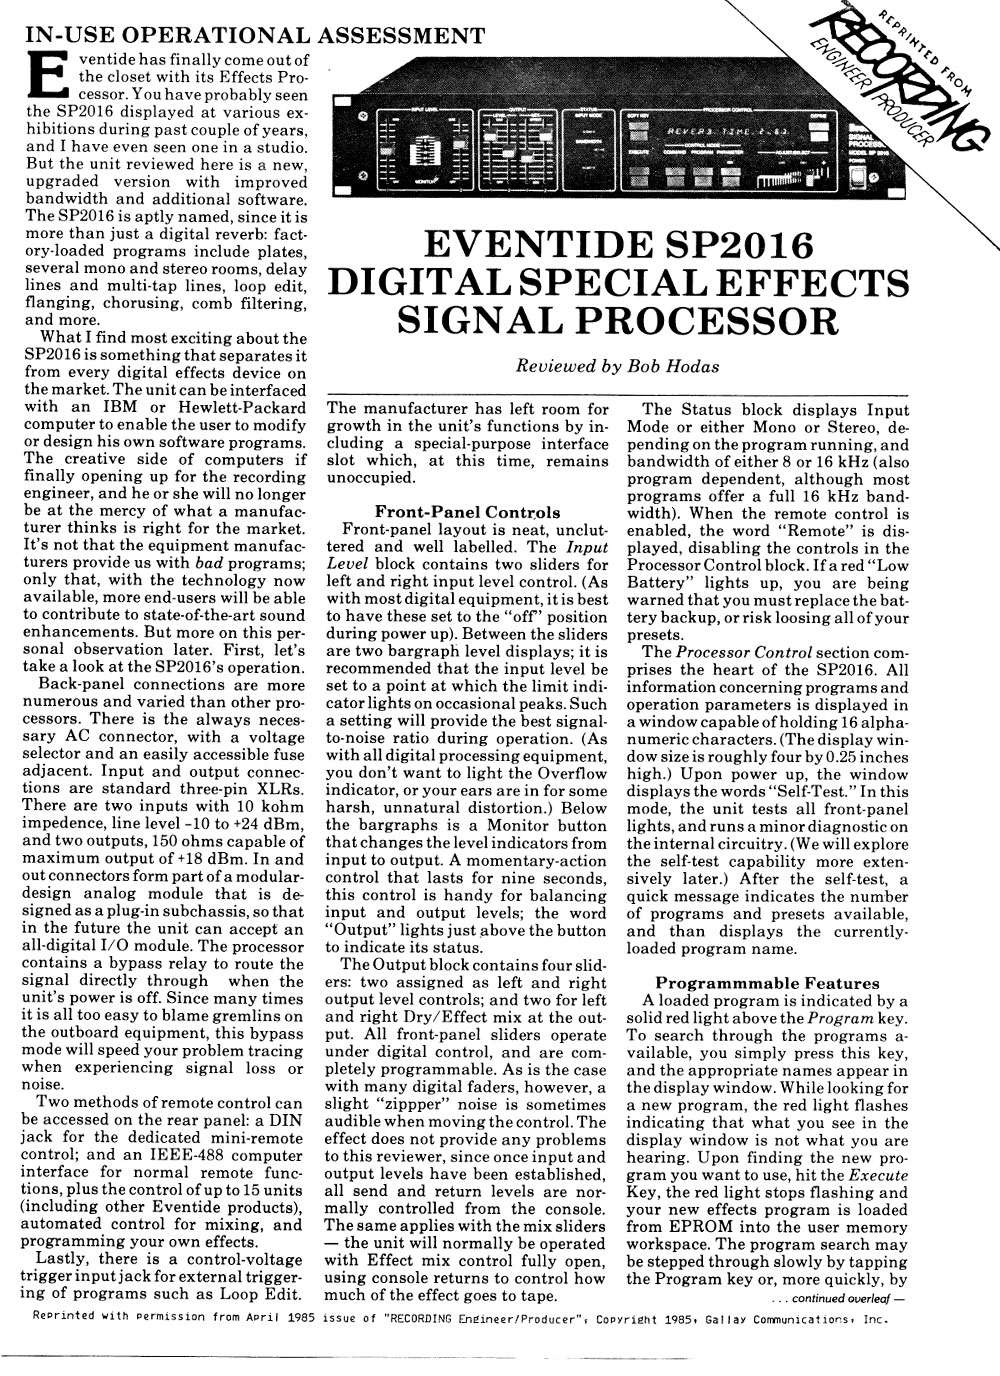 Recording Magazine Review 1985, Page 1